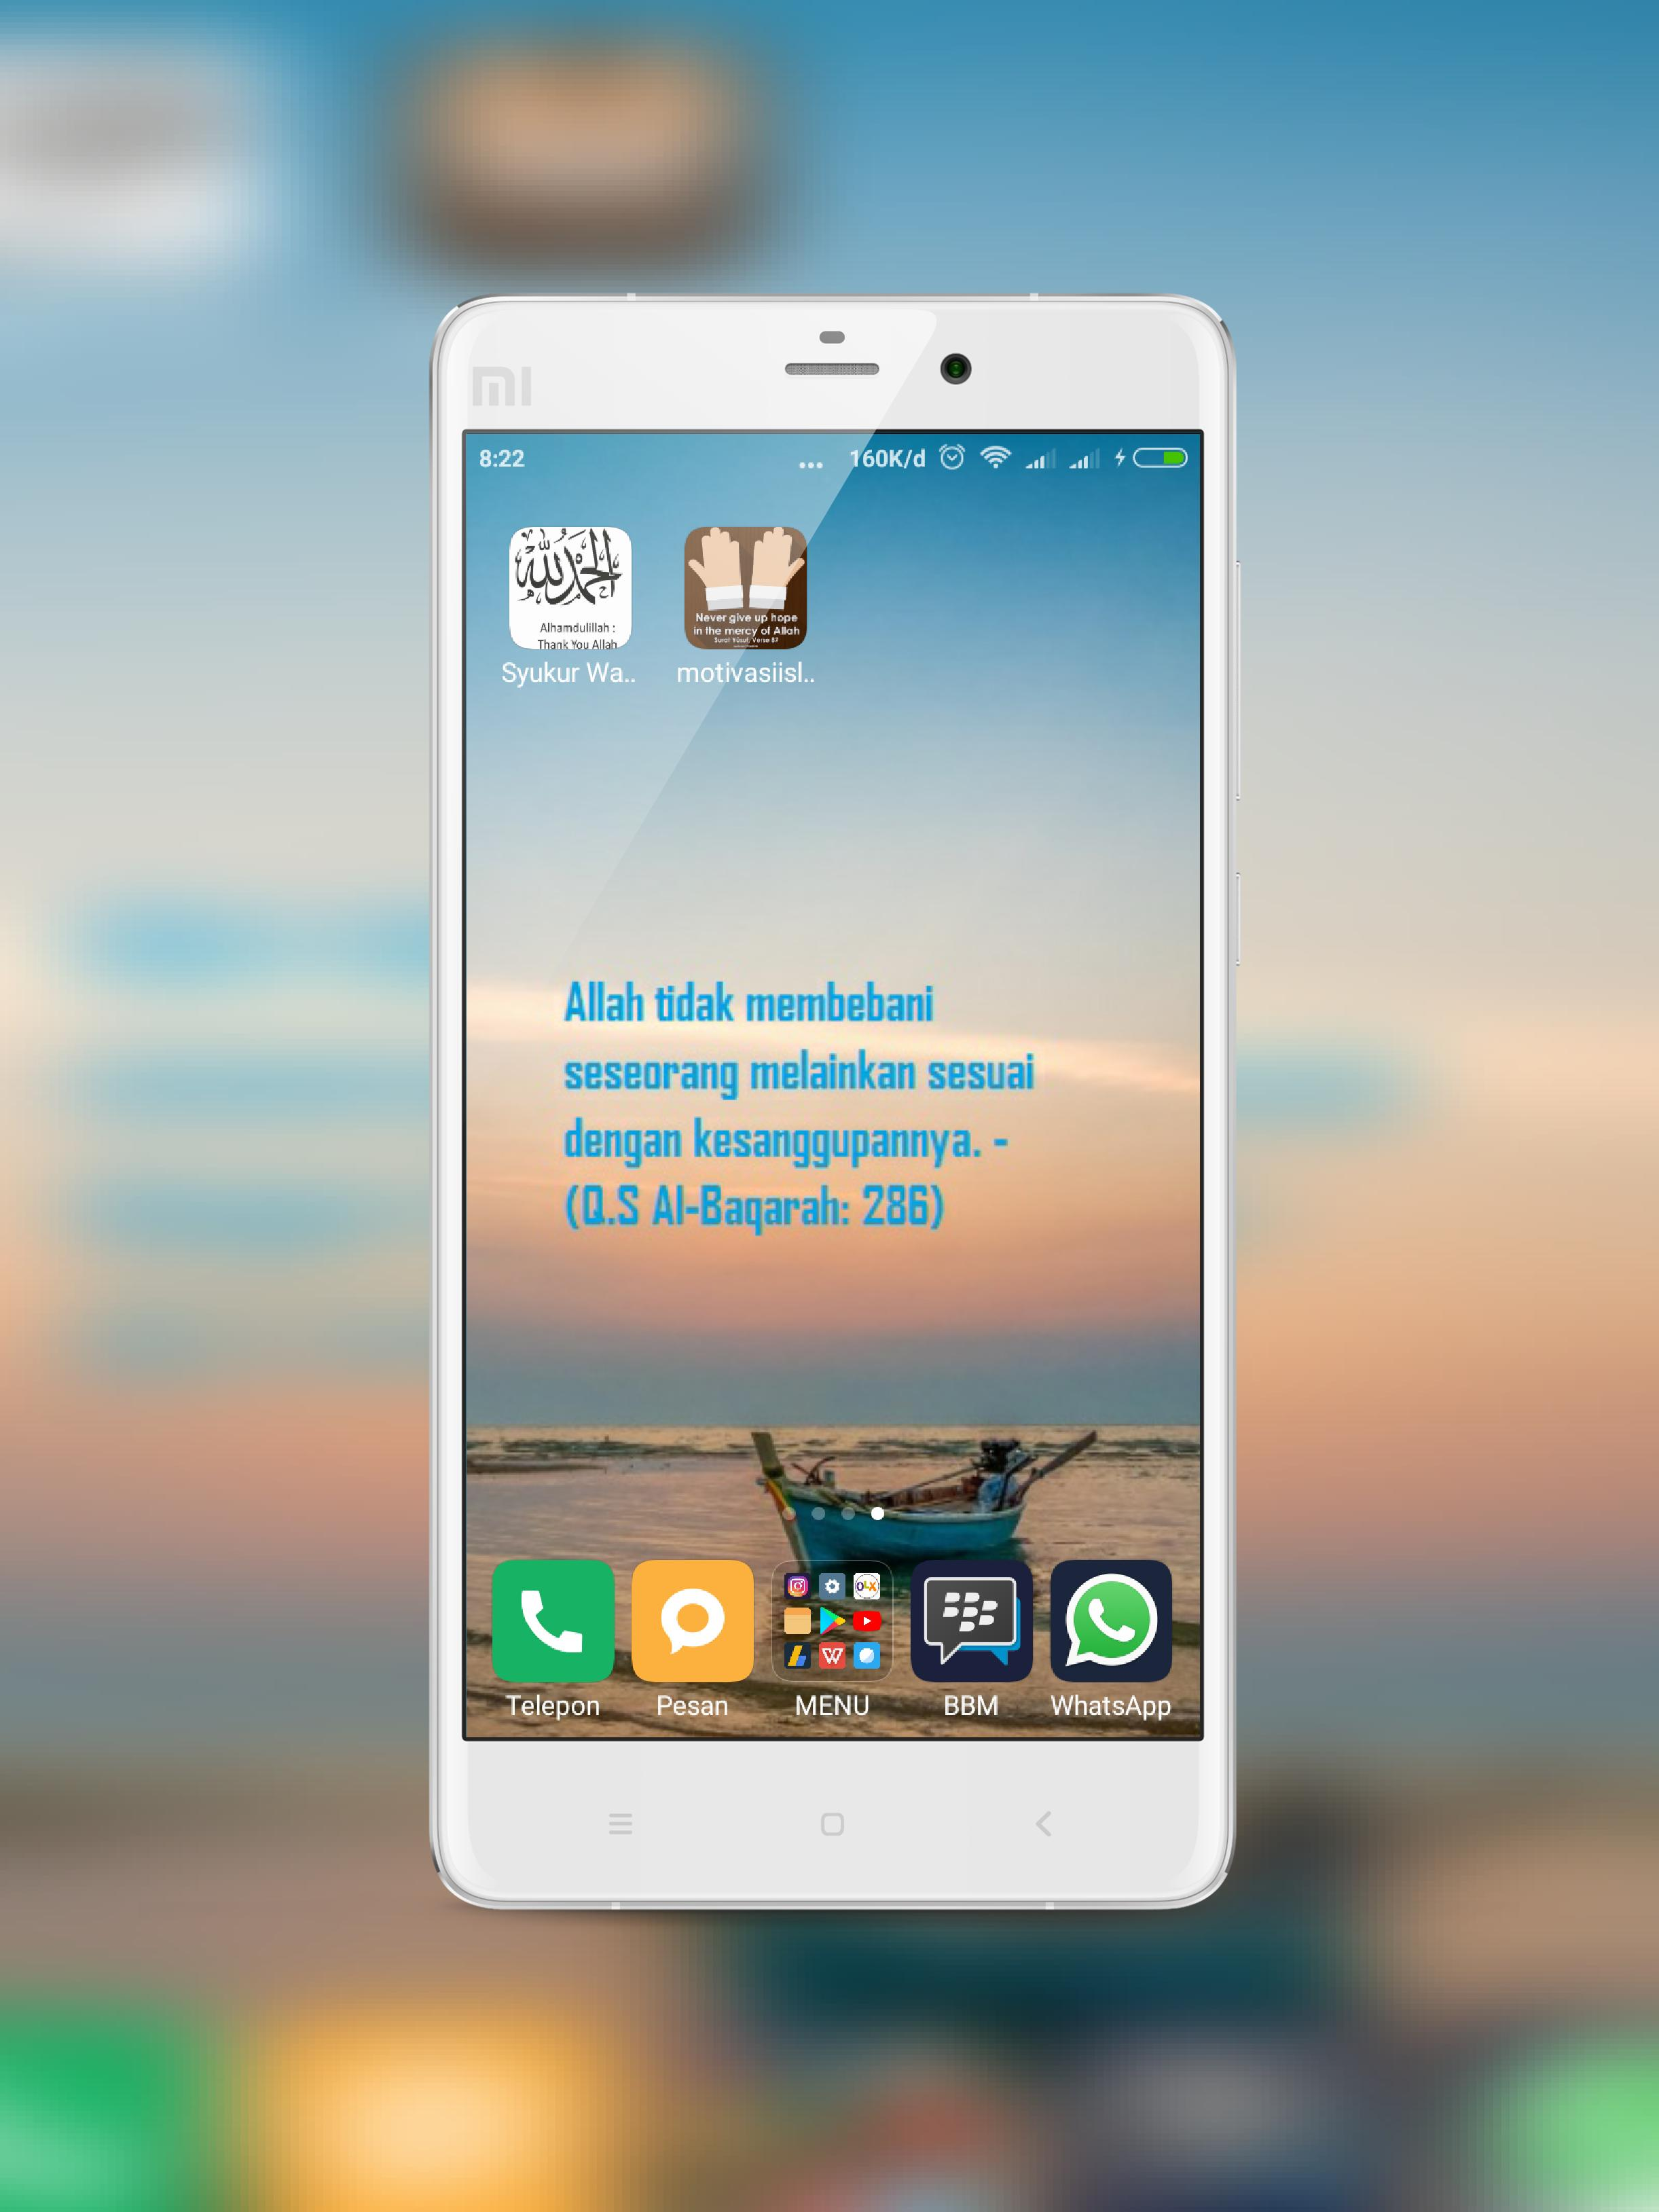 Motivasi Islam Wallpaper For Android APK Download